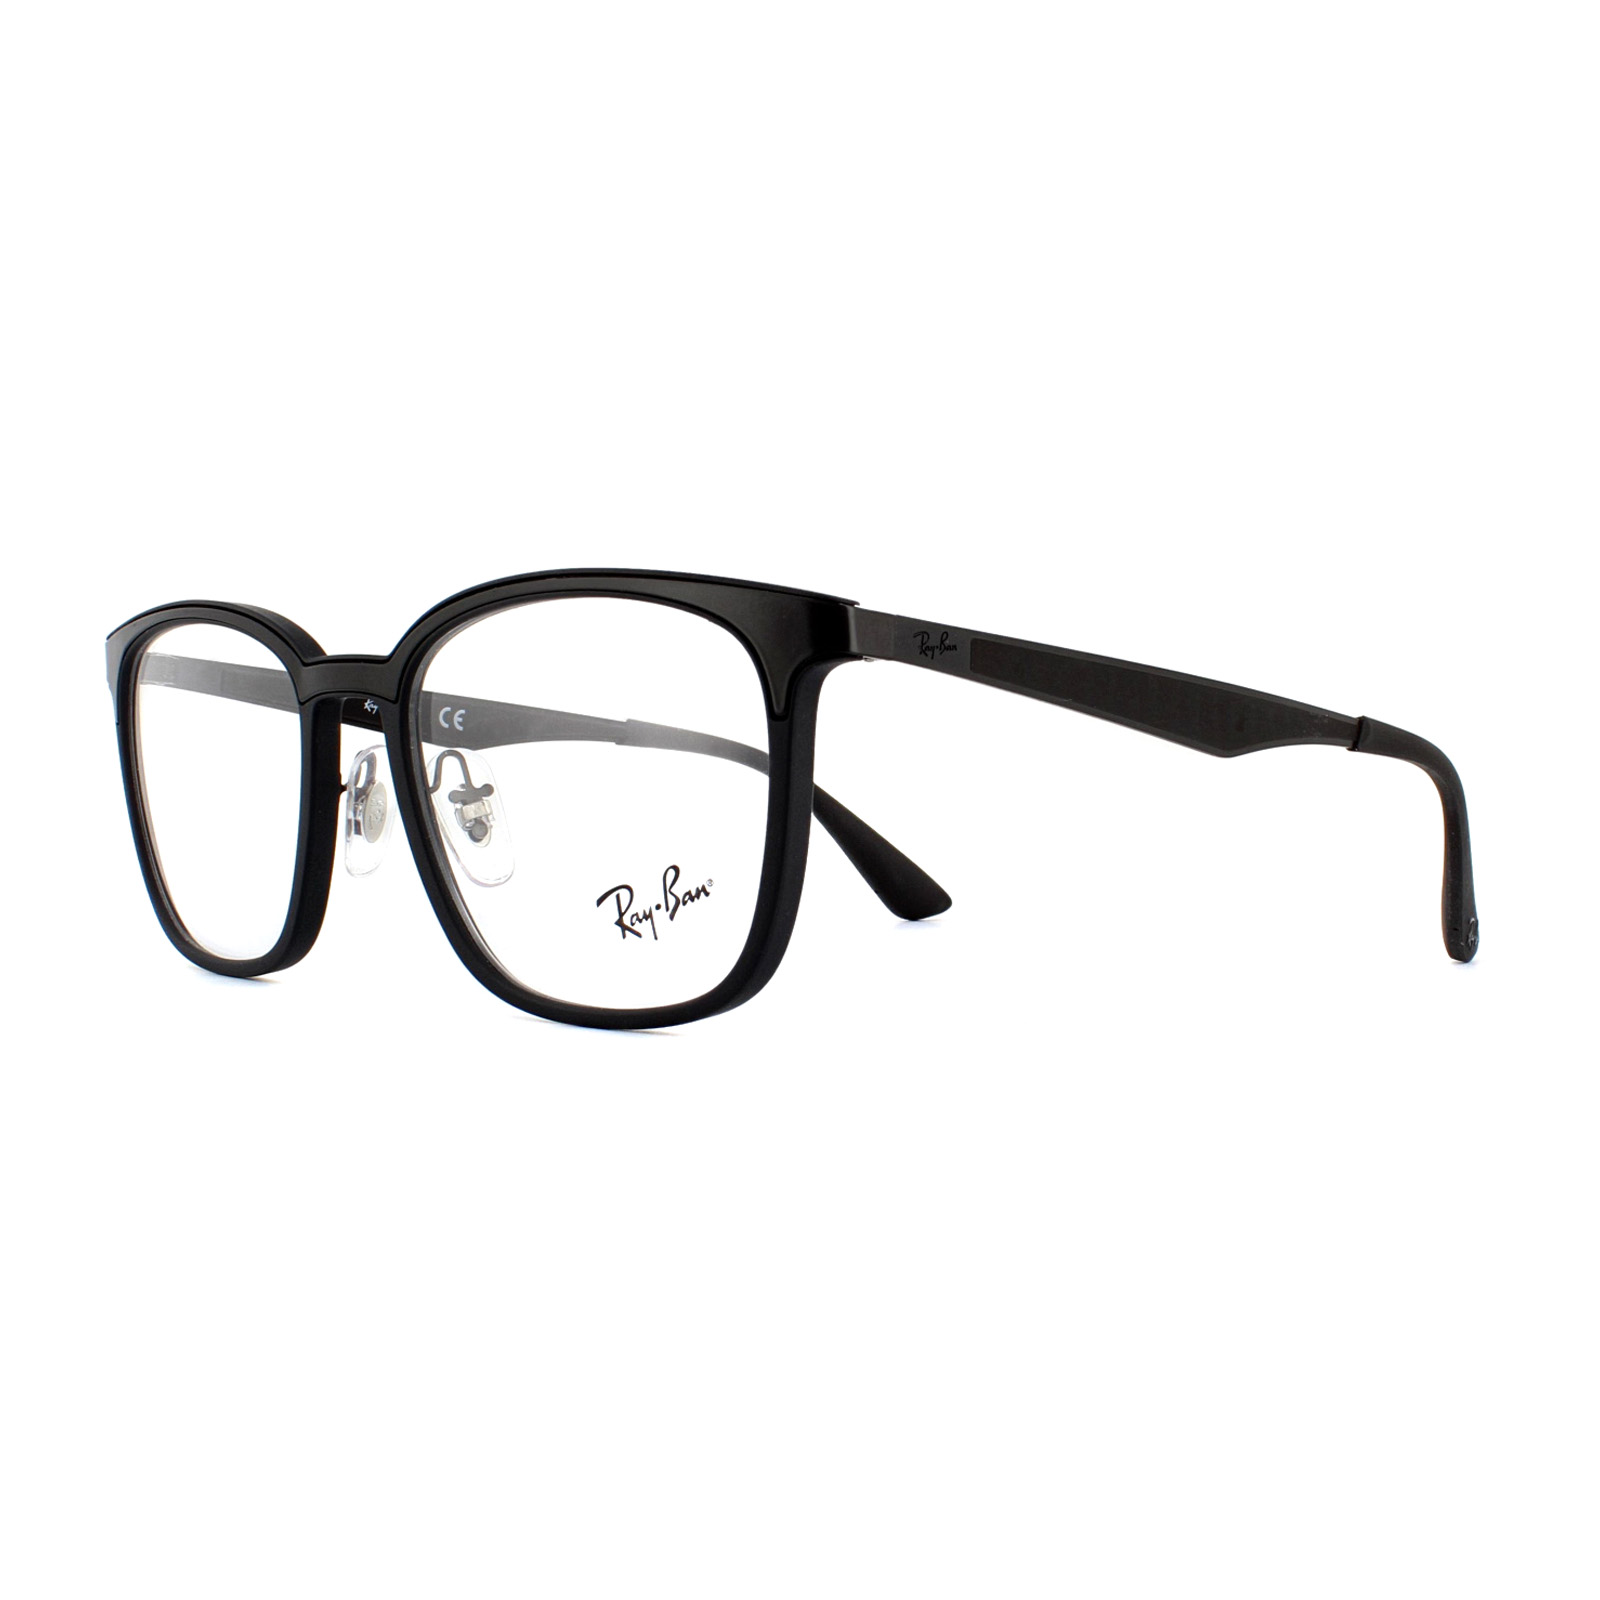 a0b4ffe4ea Ray-Ban Glasses Frames 7117 5196 Black 52mm Mens 8053672728293